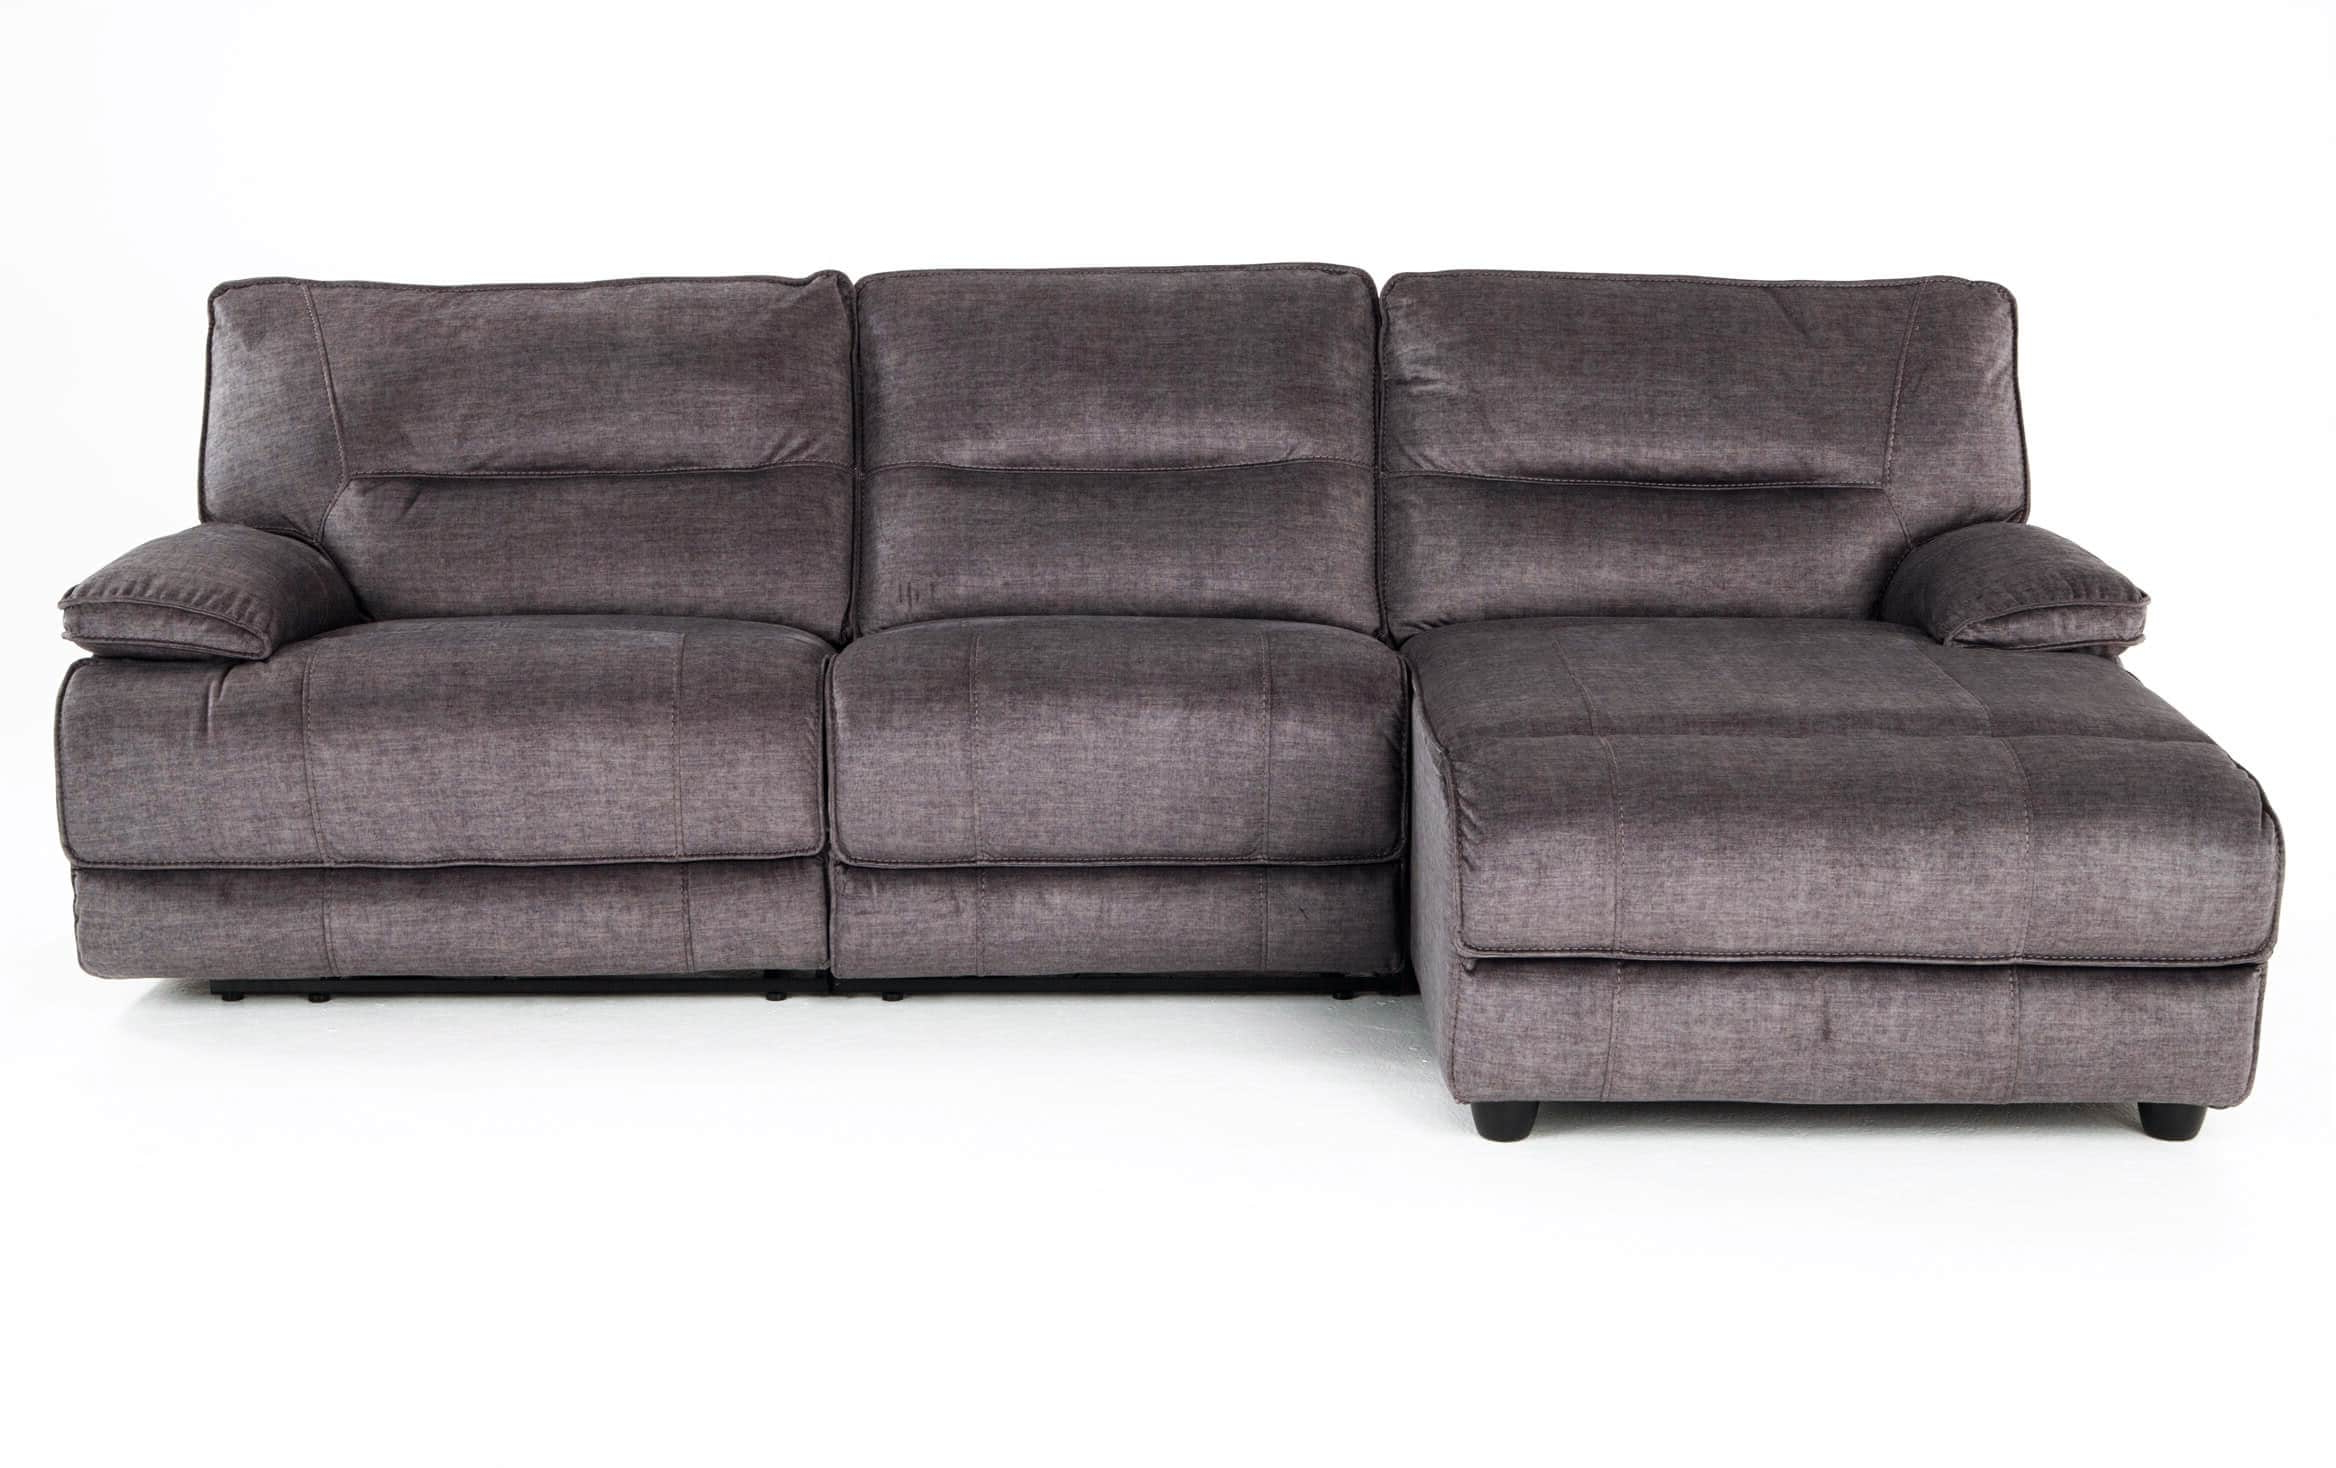 Most Popular Magnus Brown Power Reclining Sofas In Bobs Furniture Leather Reclining Sofa – Latest Sofa Pictures (View 13 of 20)